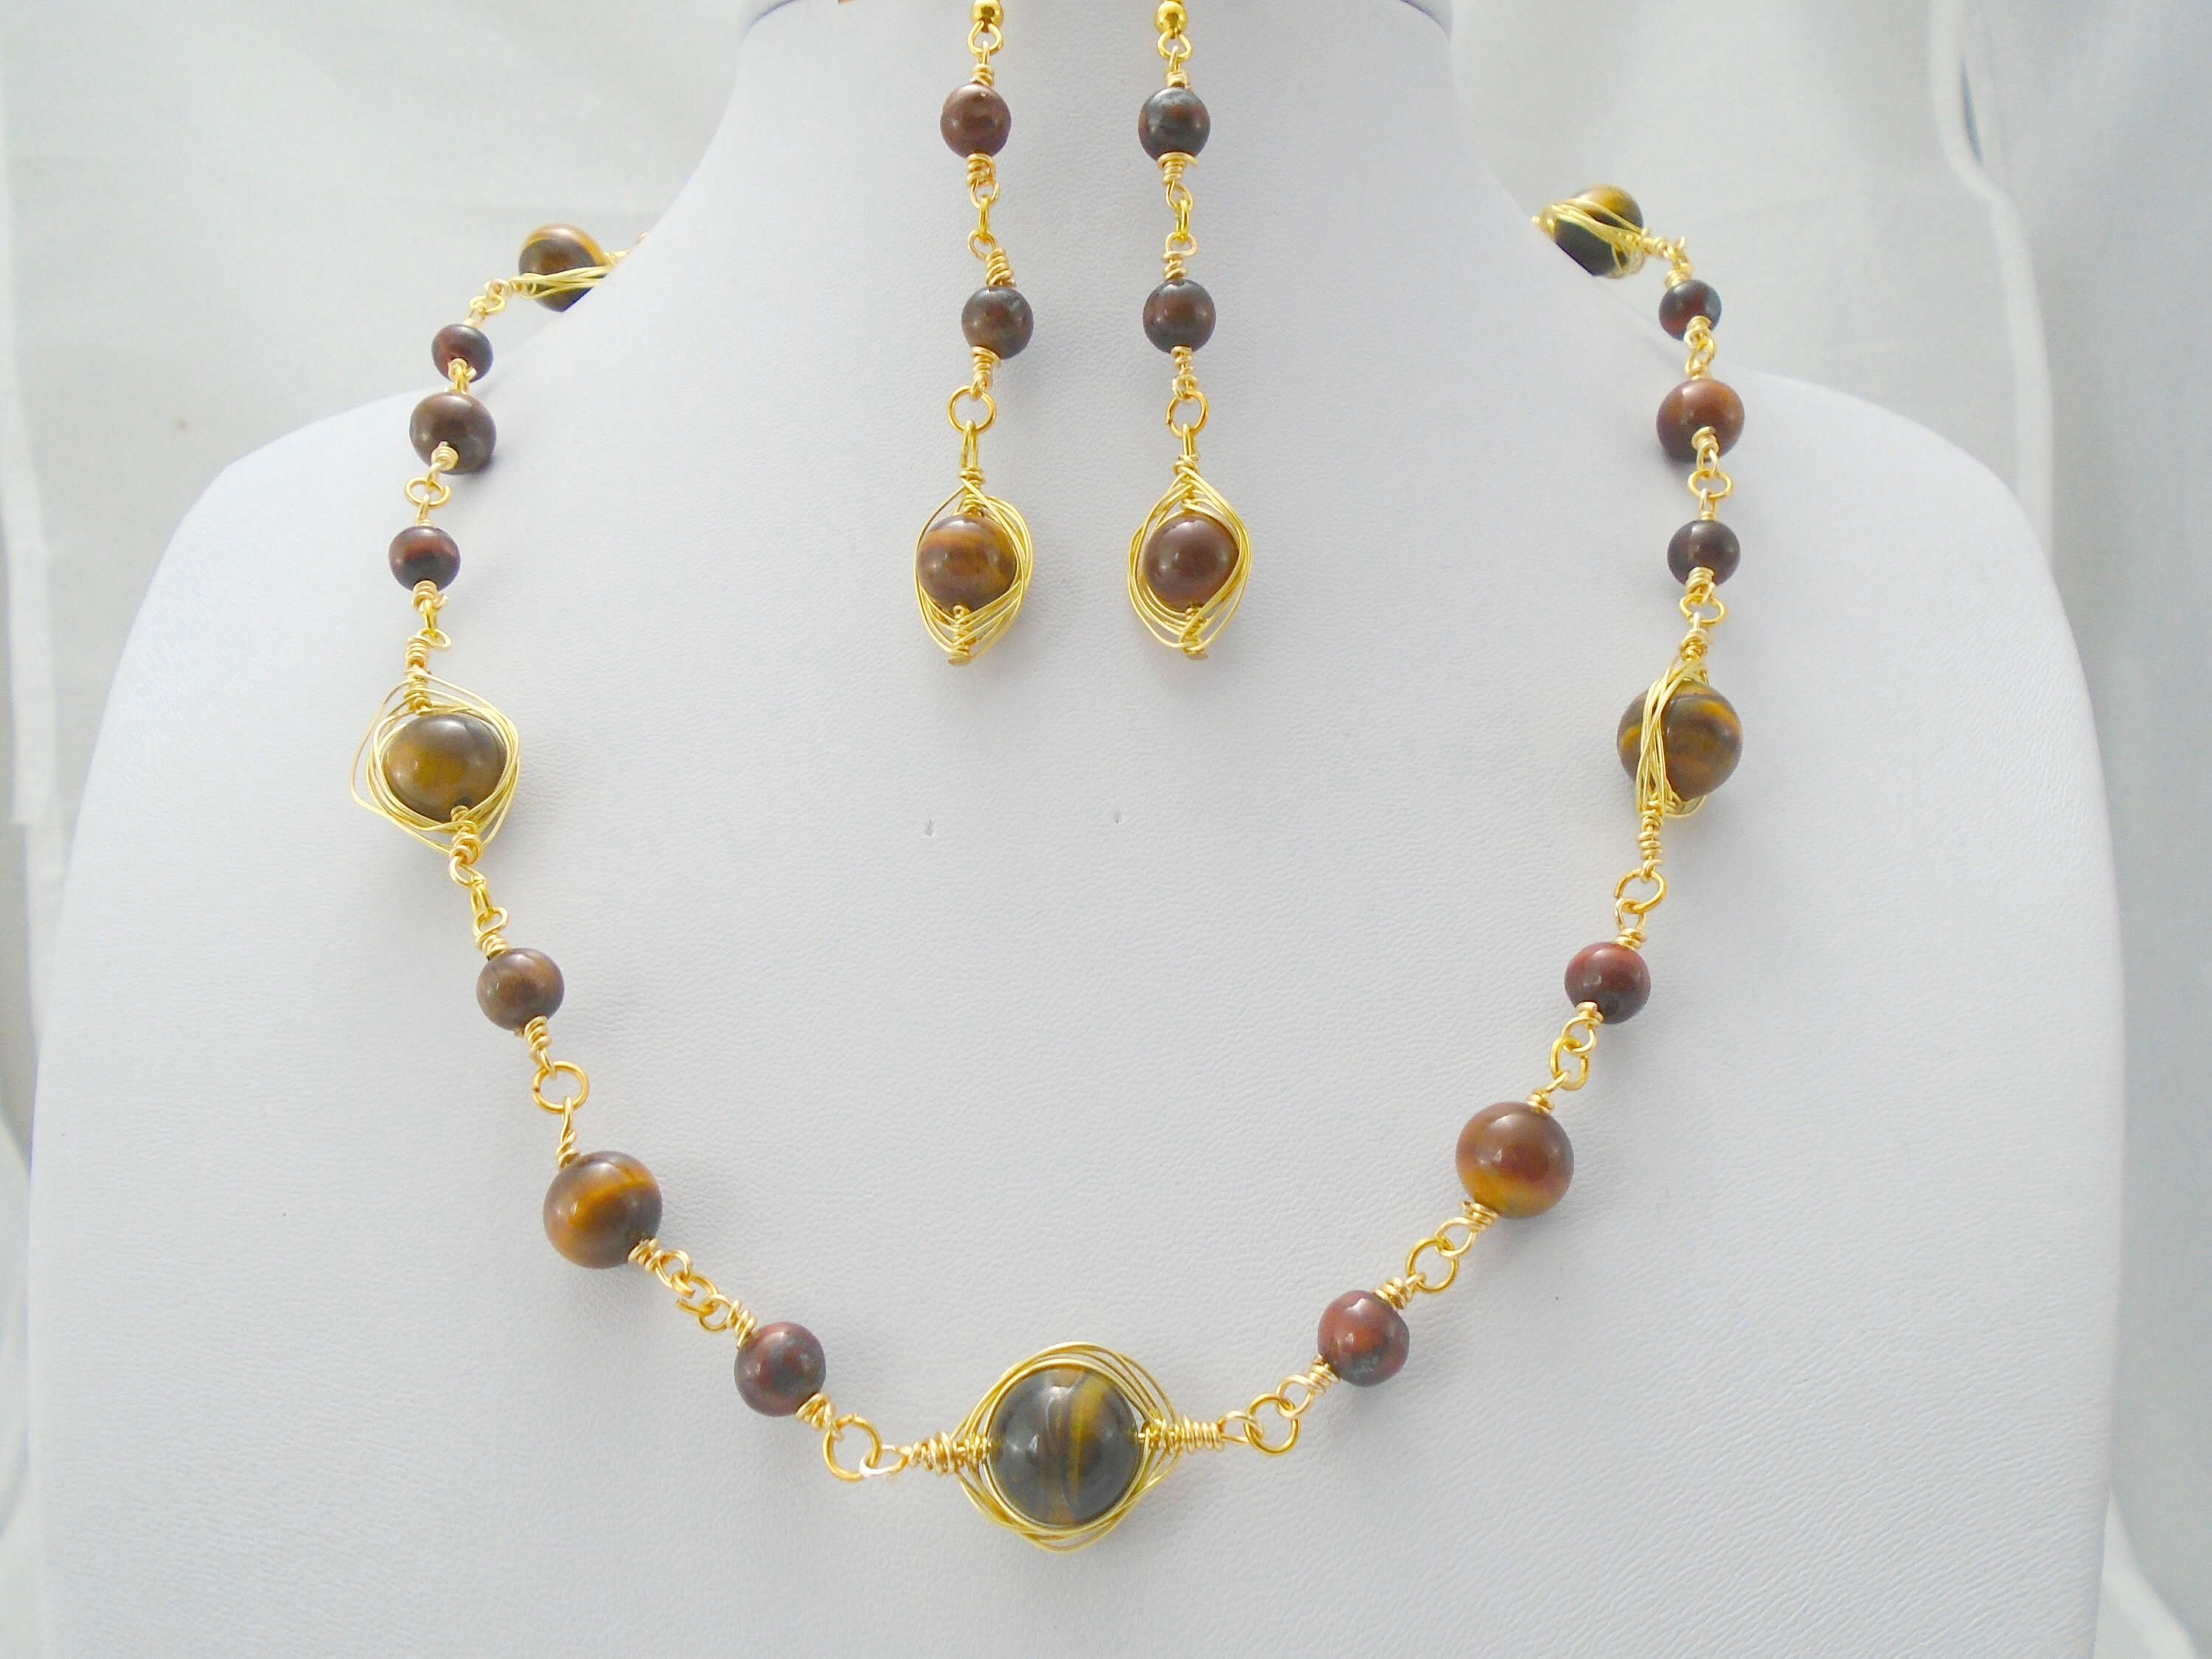 tammy tiger eye spice jewelry htm p necklace